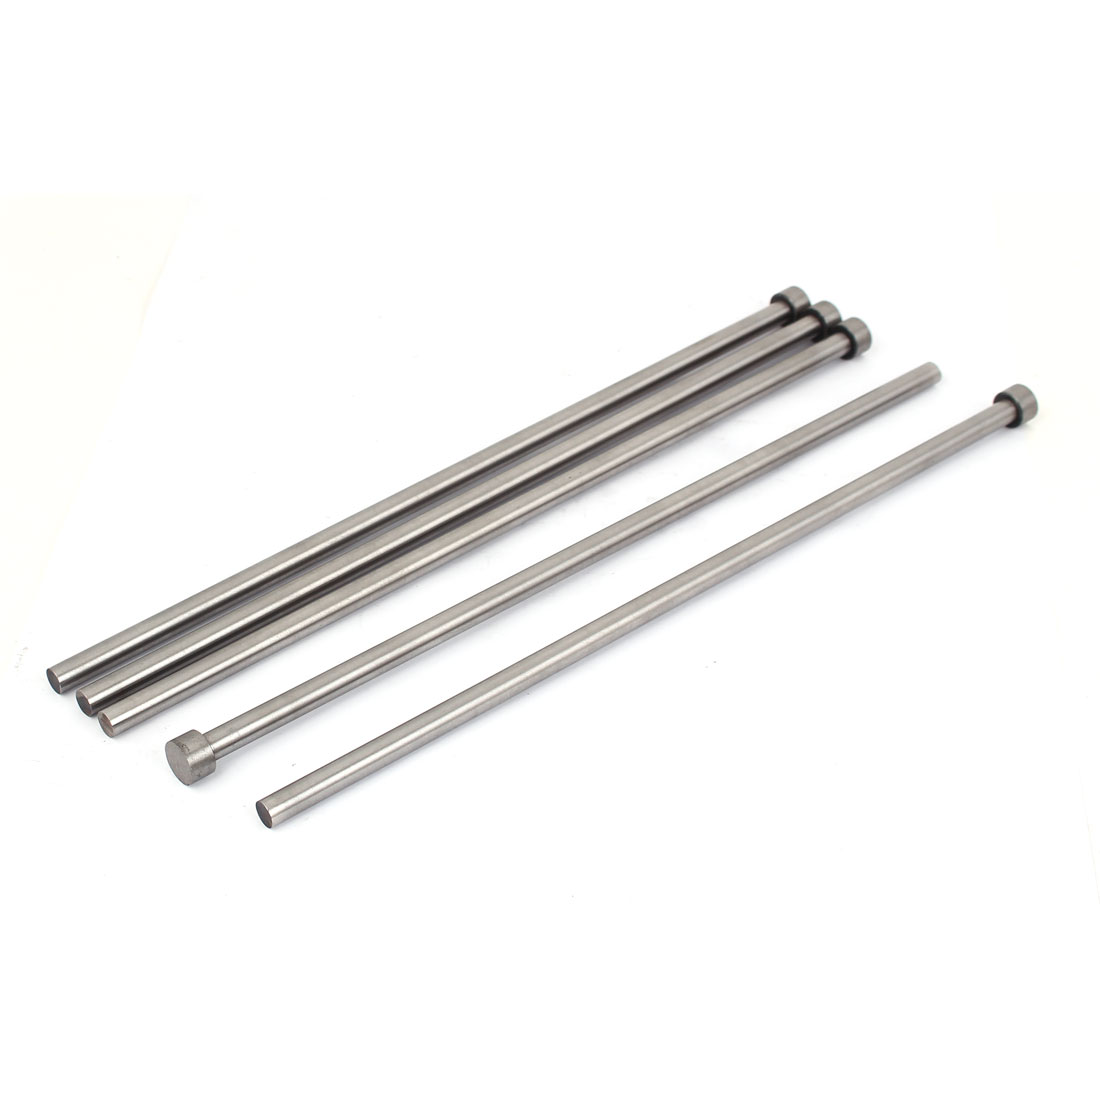 Die Mold Equipment Steel Straight Ejector Pins Punches 8mmx300mm Silver Gray 5pcs